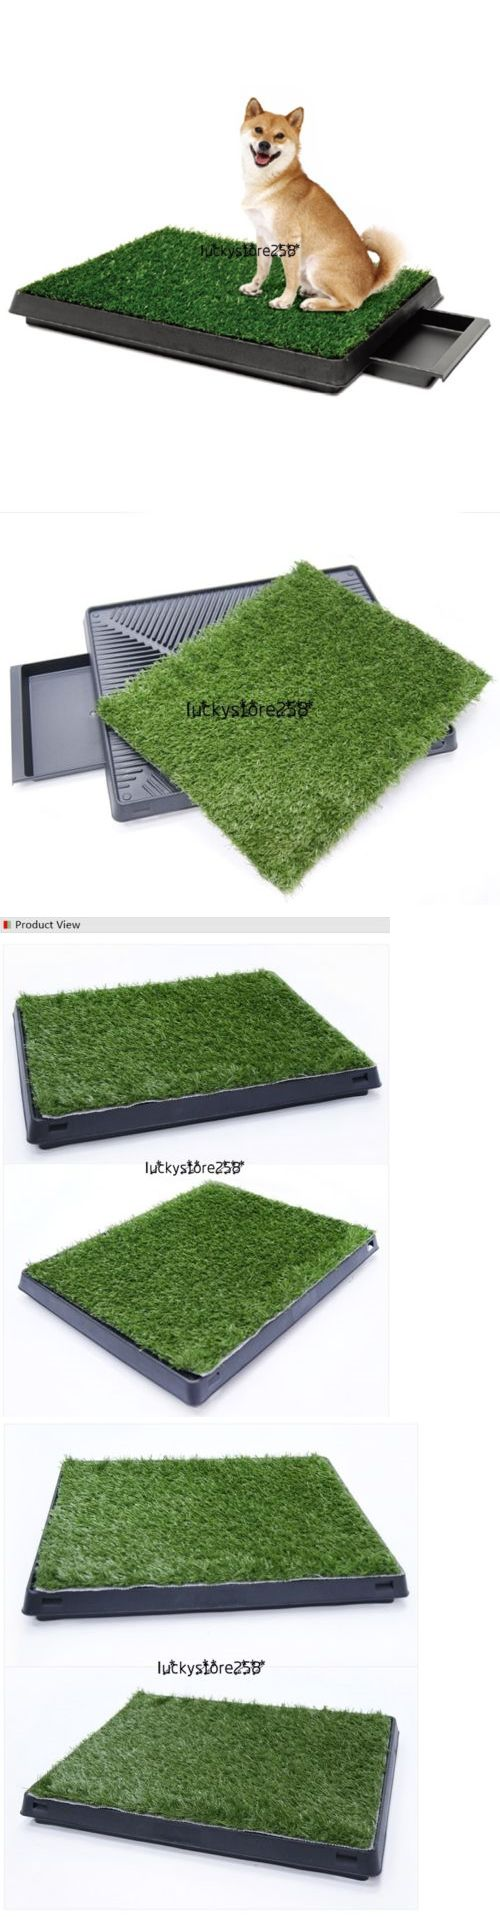 House Training Pads 146243: Puppy Potty Trainer Indoor For Pets Dog Training Pee Turf Grass Pad Mat Lkr8 BUY IT NOW ONLY: $30.26